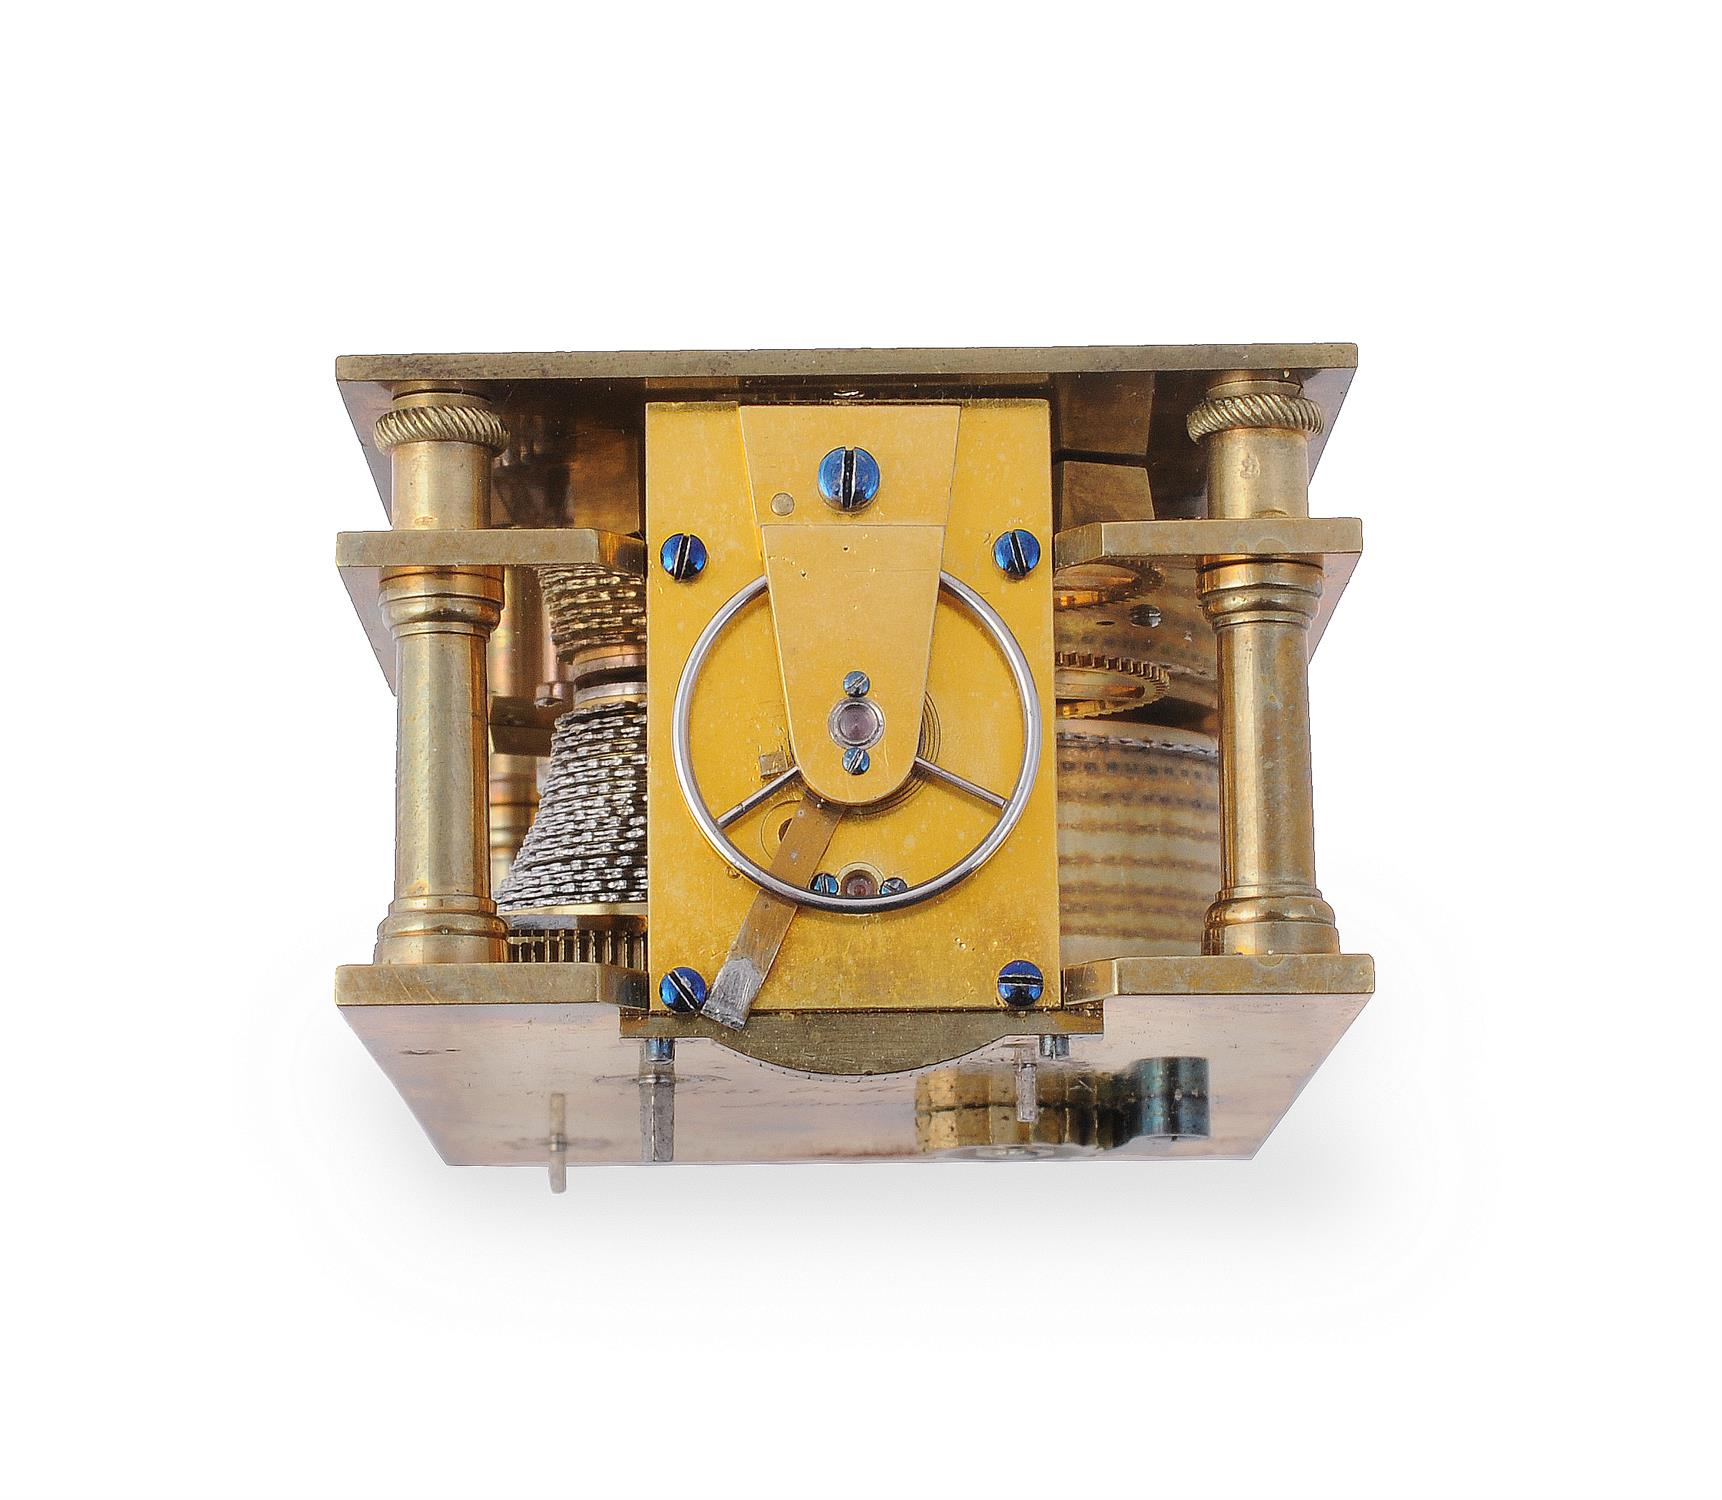 A fine small early Victorian engraved gilt brass small calendar carriage timepiece with twin thermom - Image 13 of 14